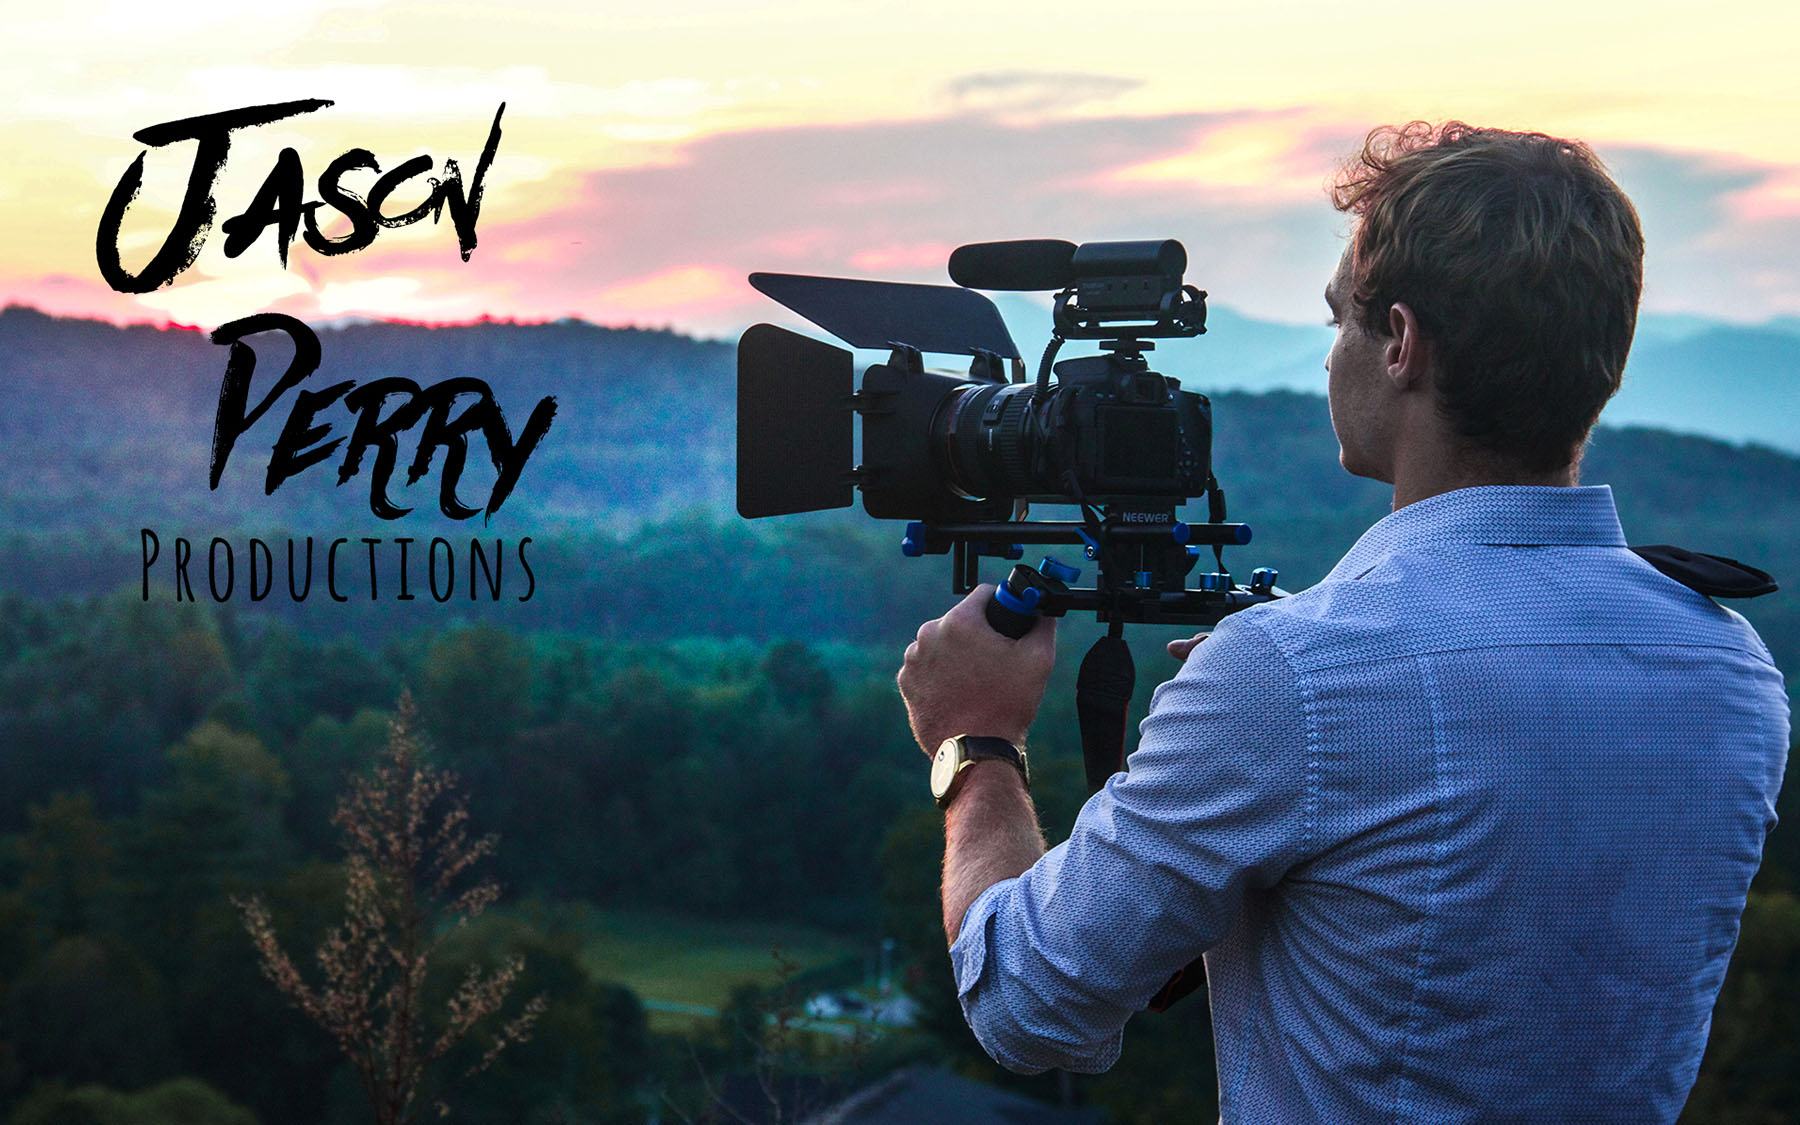 JASON PERRY PRODUCTIONS  Jason likes to go above and beyond the traditional wedding video. Capturing the way you feel and preserving your memories to share for many years to come is the most important part of what he does.    More Information      Leave a Review